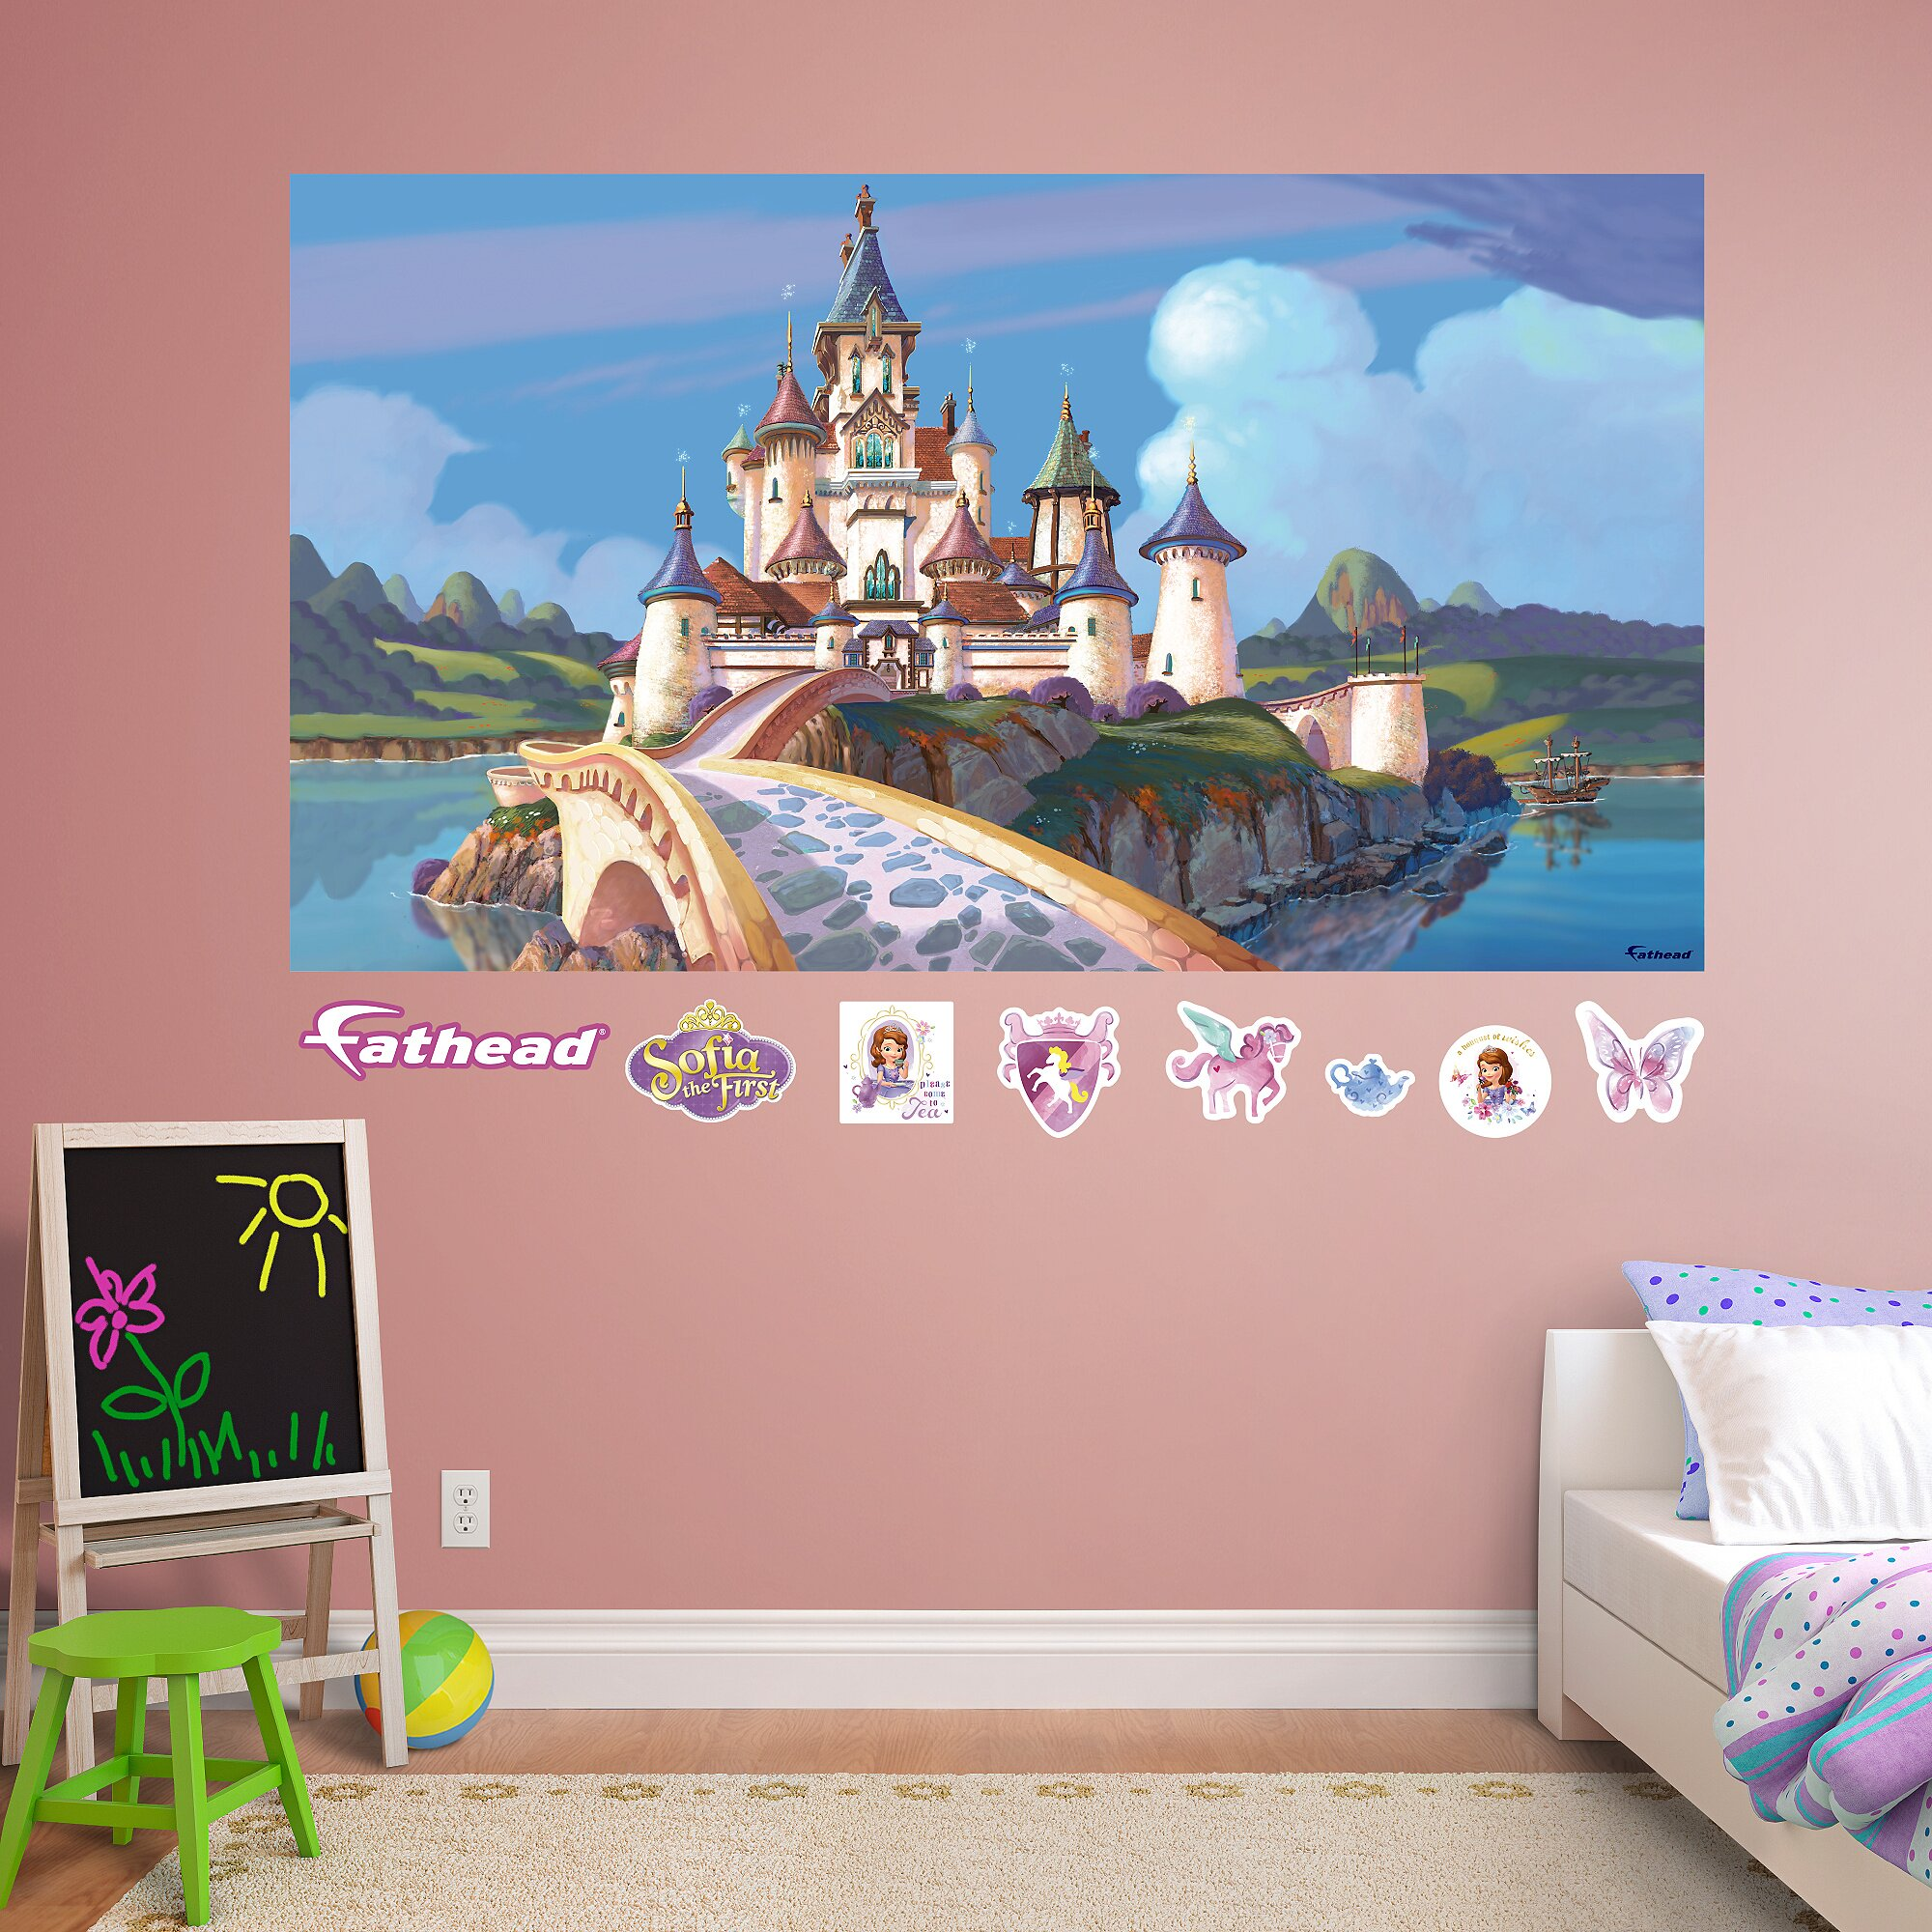 Fathead disney sofia the first castle peel and stick wall for Disney wall mural stickers